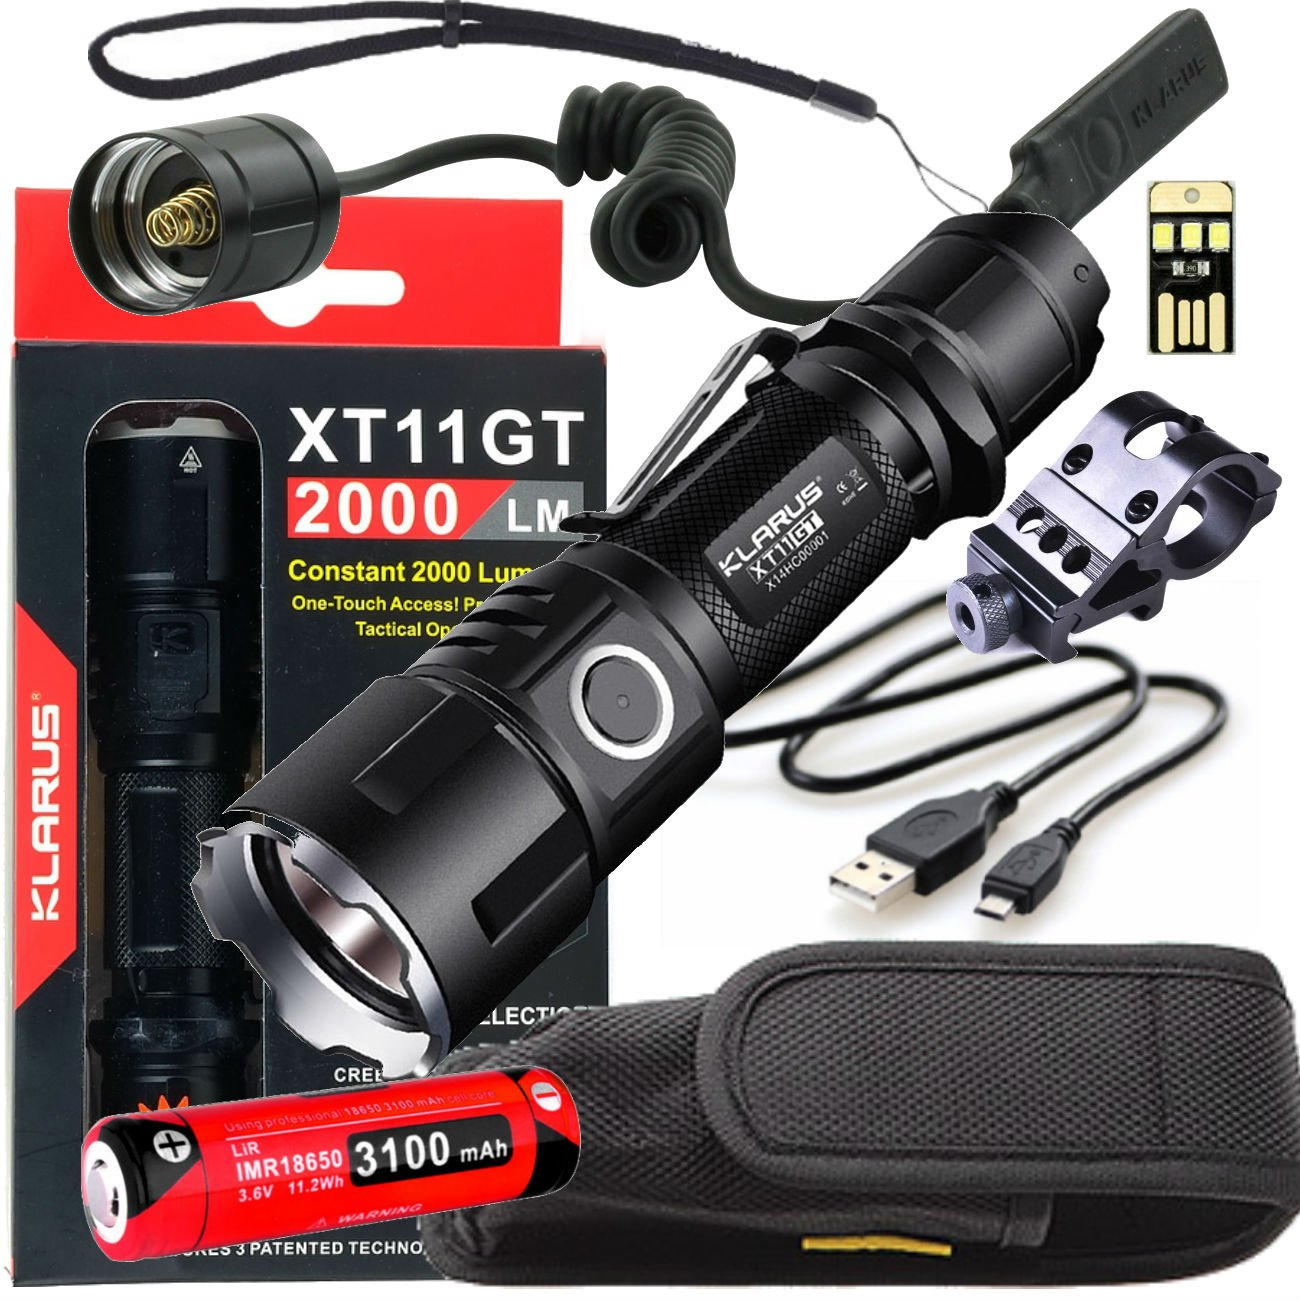 Klarus Upgraded XT11GT WEAPON BUNDLE w/ LED Tactical Rechargeable Flashlight, 18650 Battery, TRS1 Remote Pressure Switch, Offset Gun Mount, USB Cable, Lanyard, Holster, Pocket Clip, and USB Mini Light by Klarus